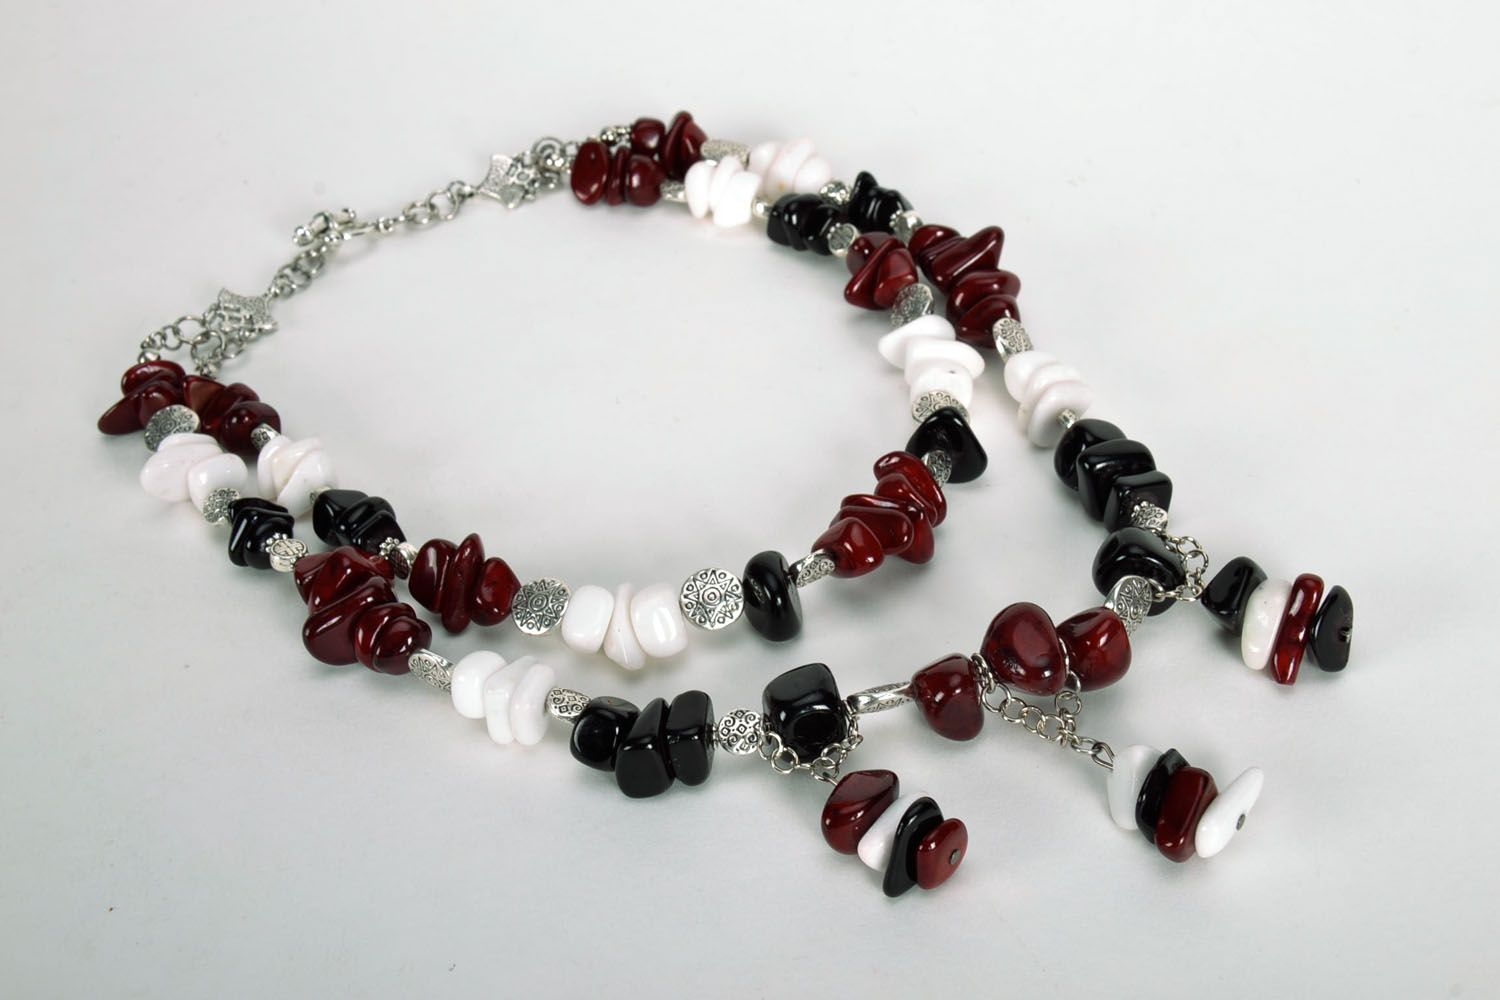 Homemade bead necklace with natural stones photo 5